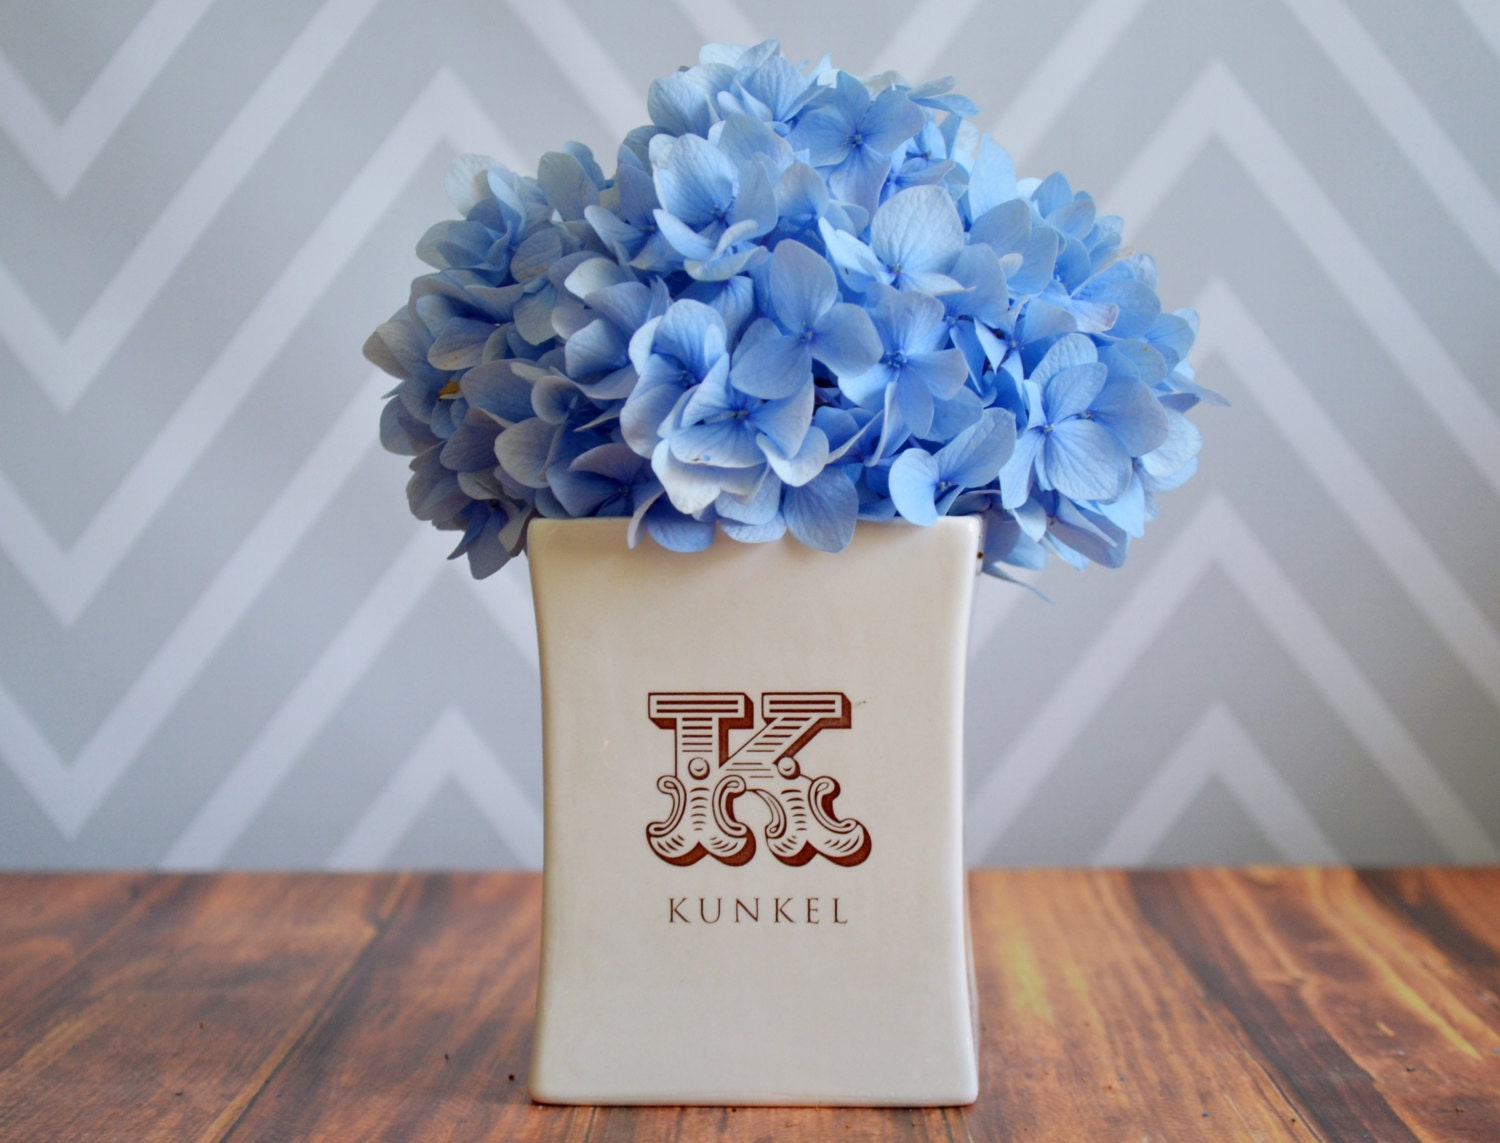 pin this vase beautiful photo with glass both personalized you highlight flower arrangement can a and